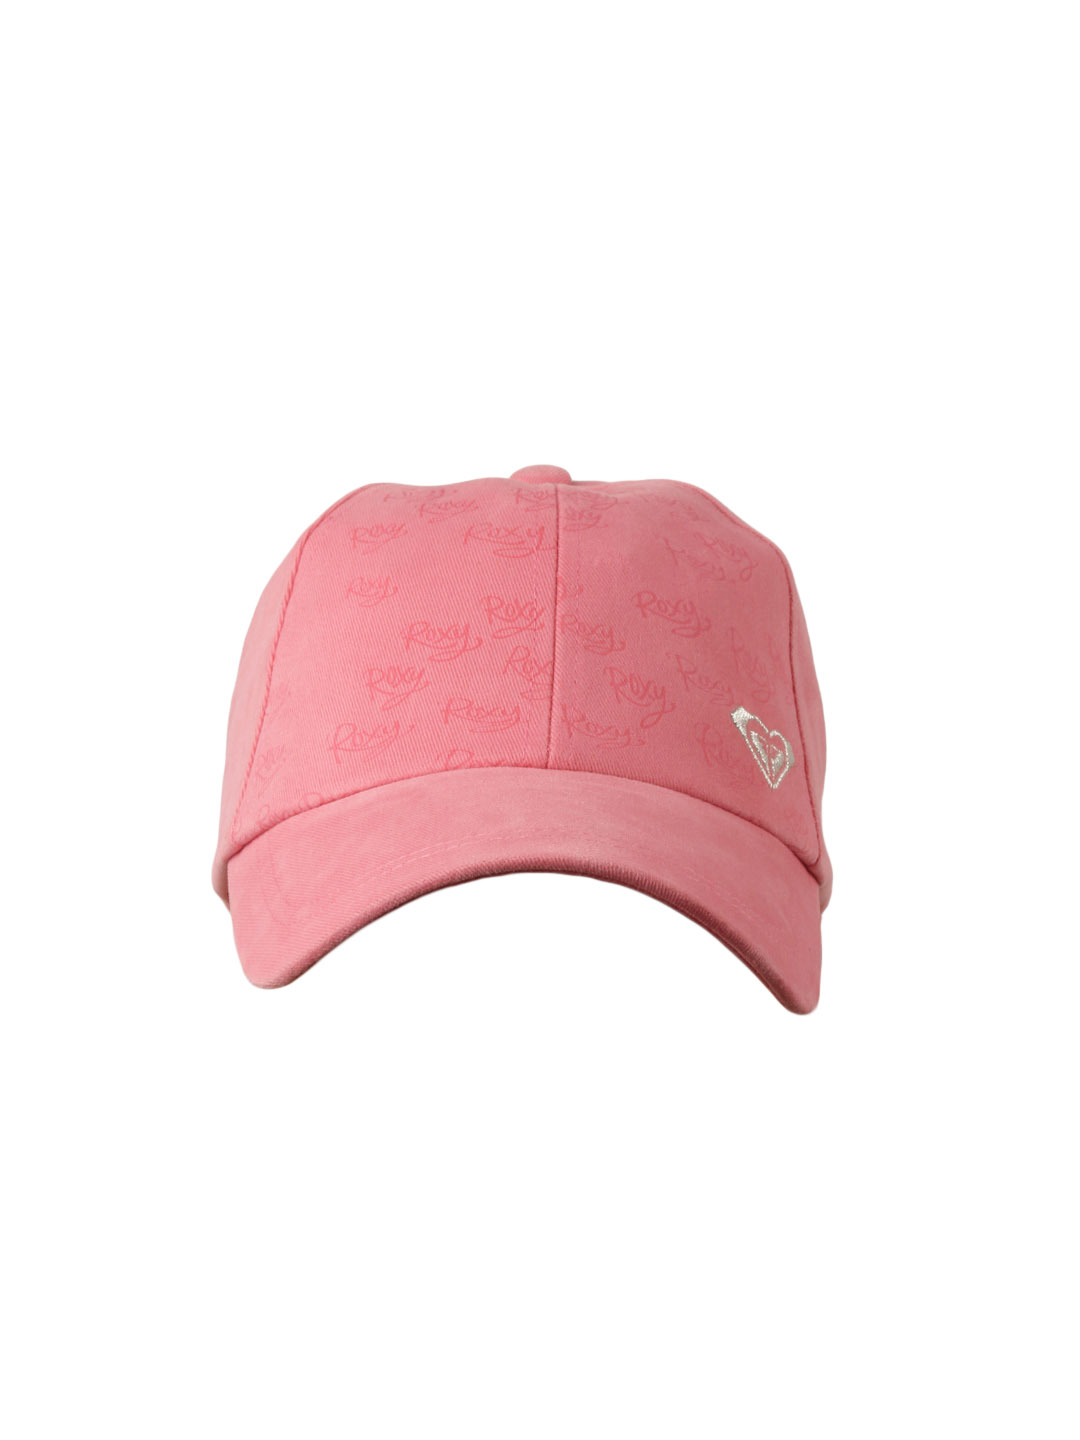 Roxy Women Pink Cap